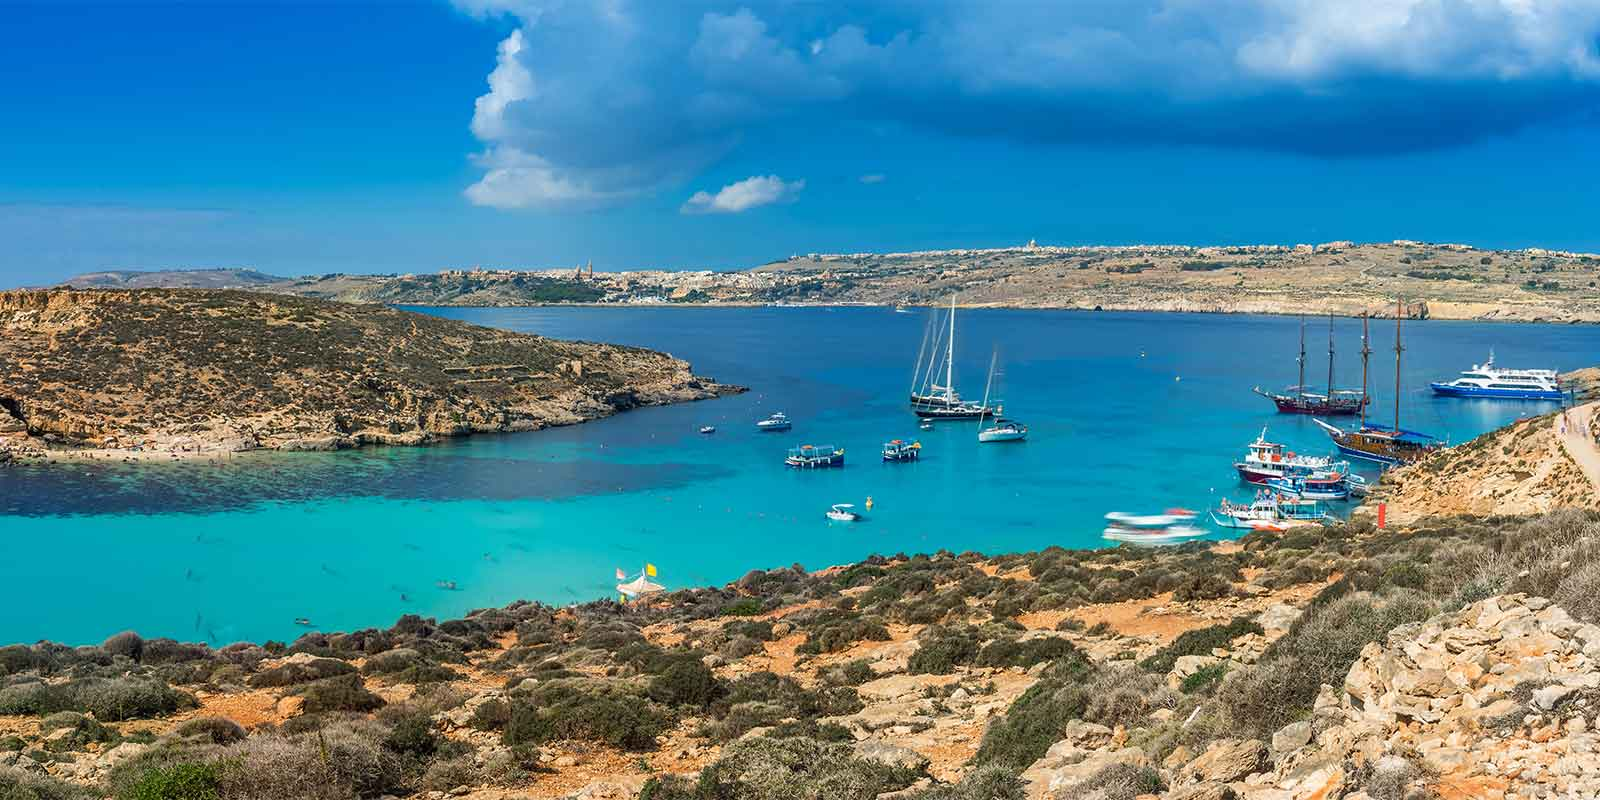 Panorama of turquoise Blue Lagoon and boats on Comino Island, Malta